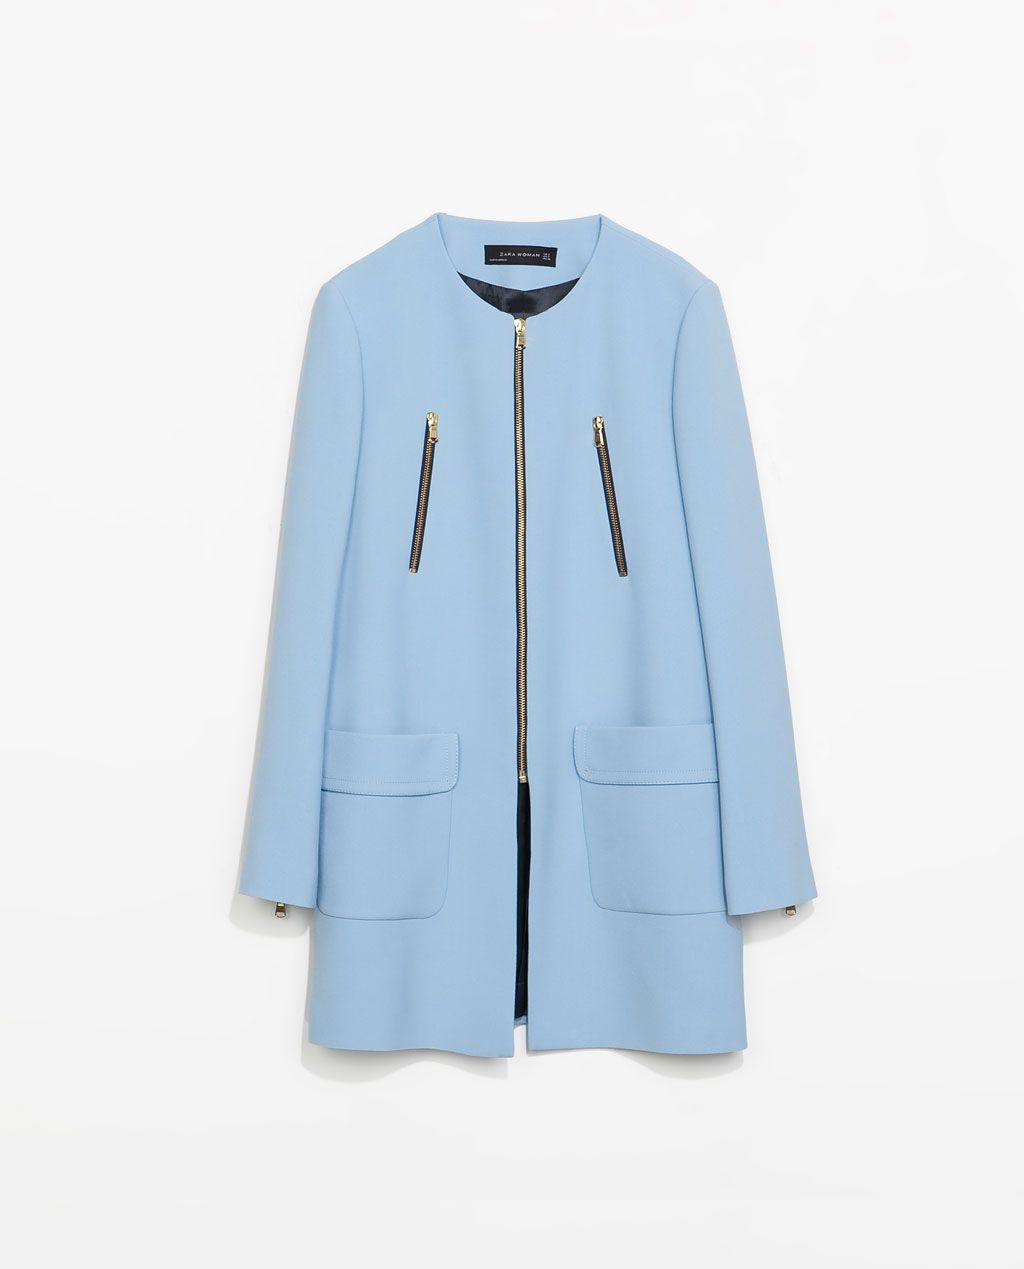 Image of coat with zips from zara styles construction